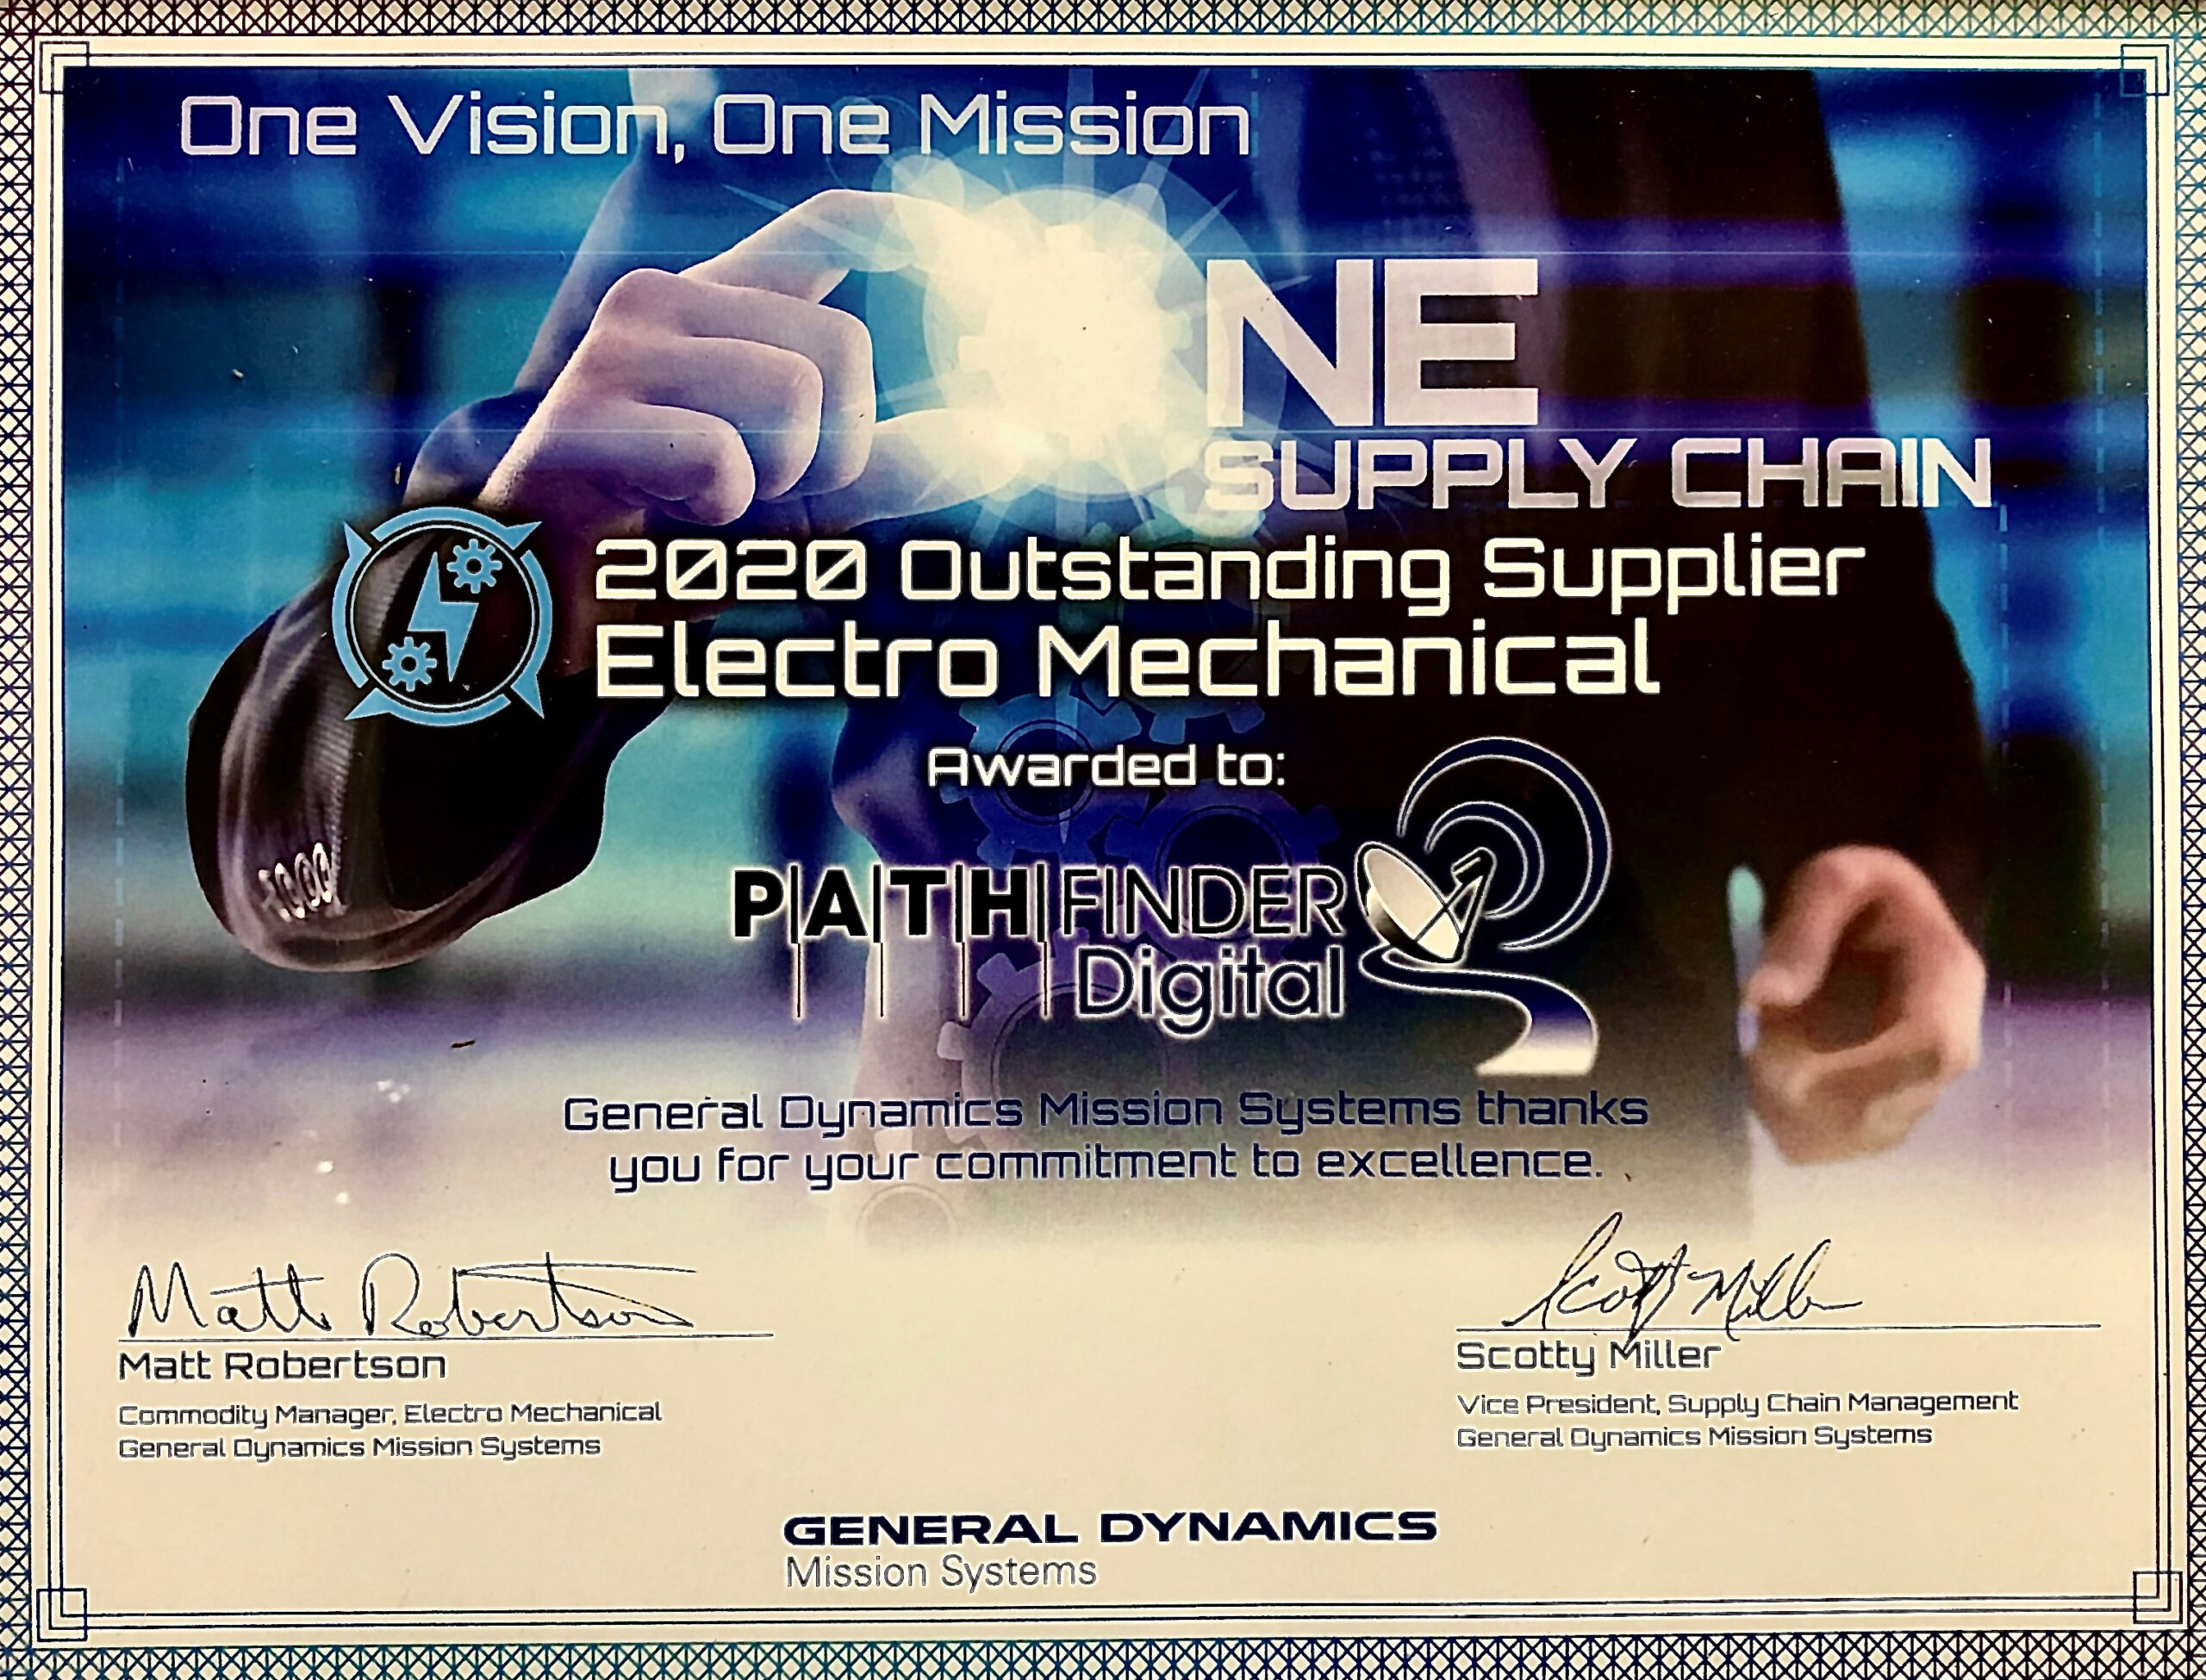 GDMS 2020 Supplier Award